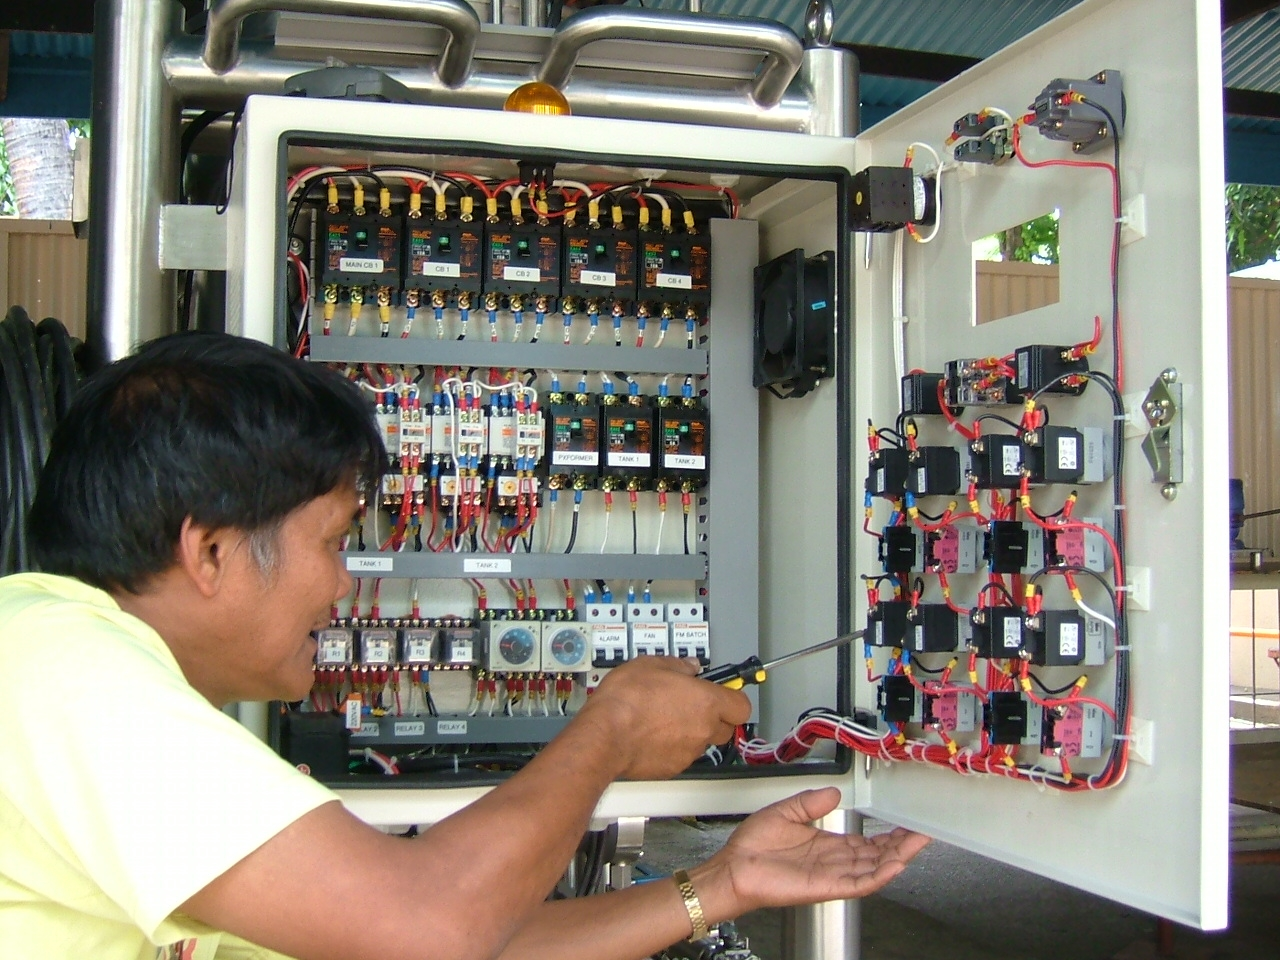 fire pump control panel wiring diagram images electrical control panel wiring drawings wiring diagrams and